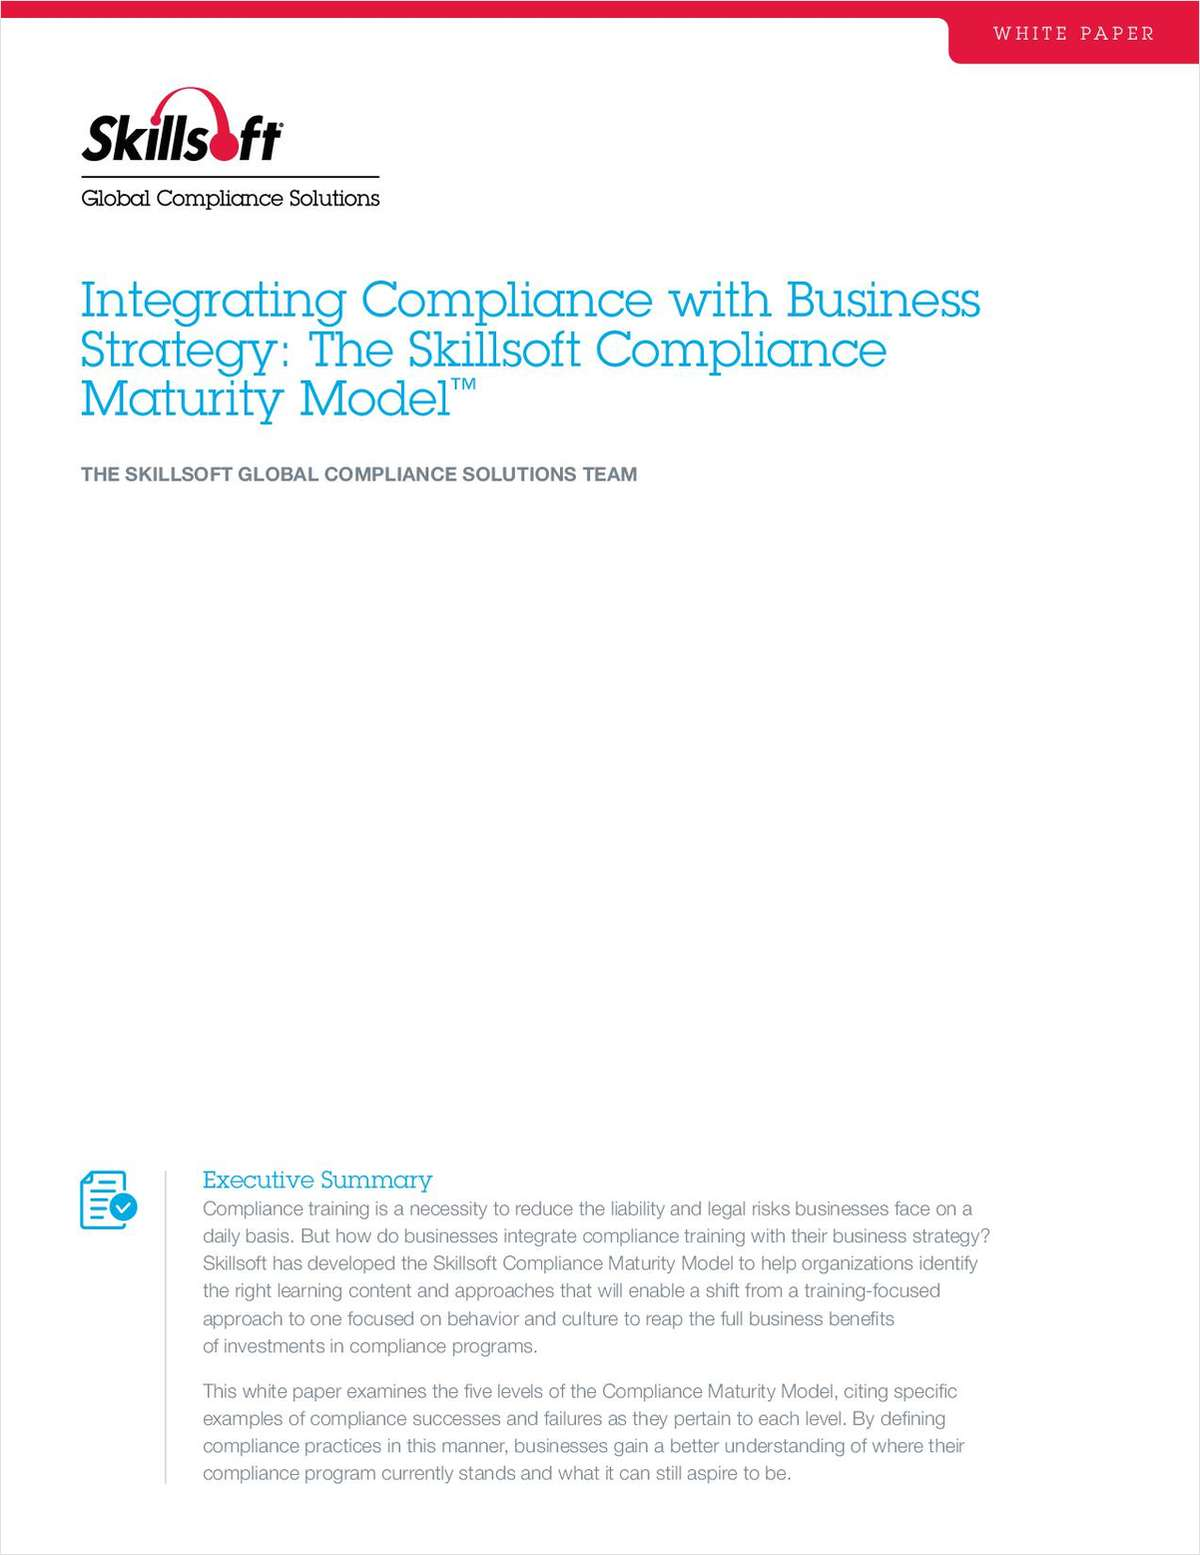 Integrating Compliance with Business Strategy